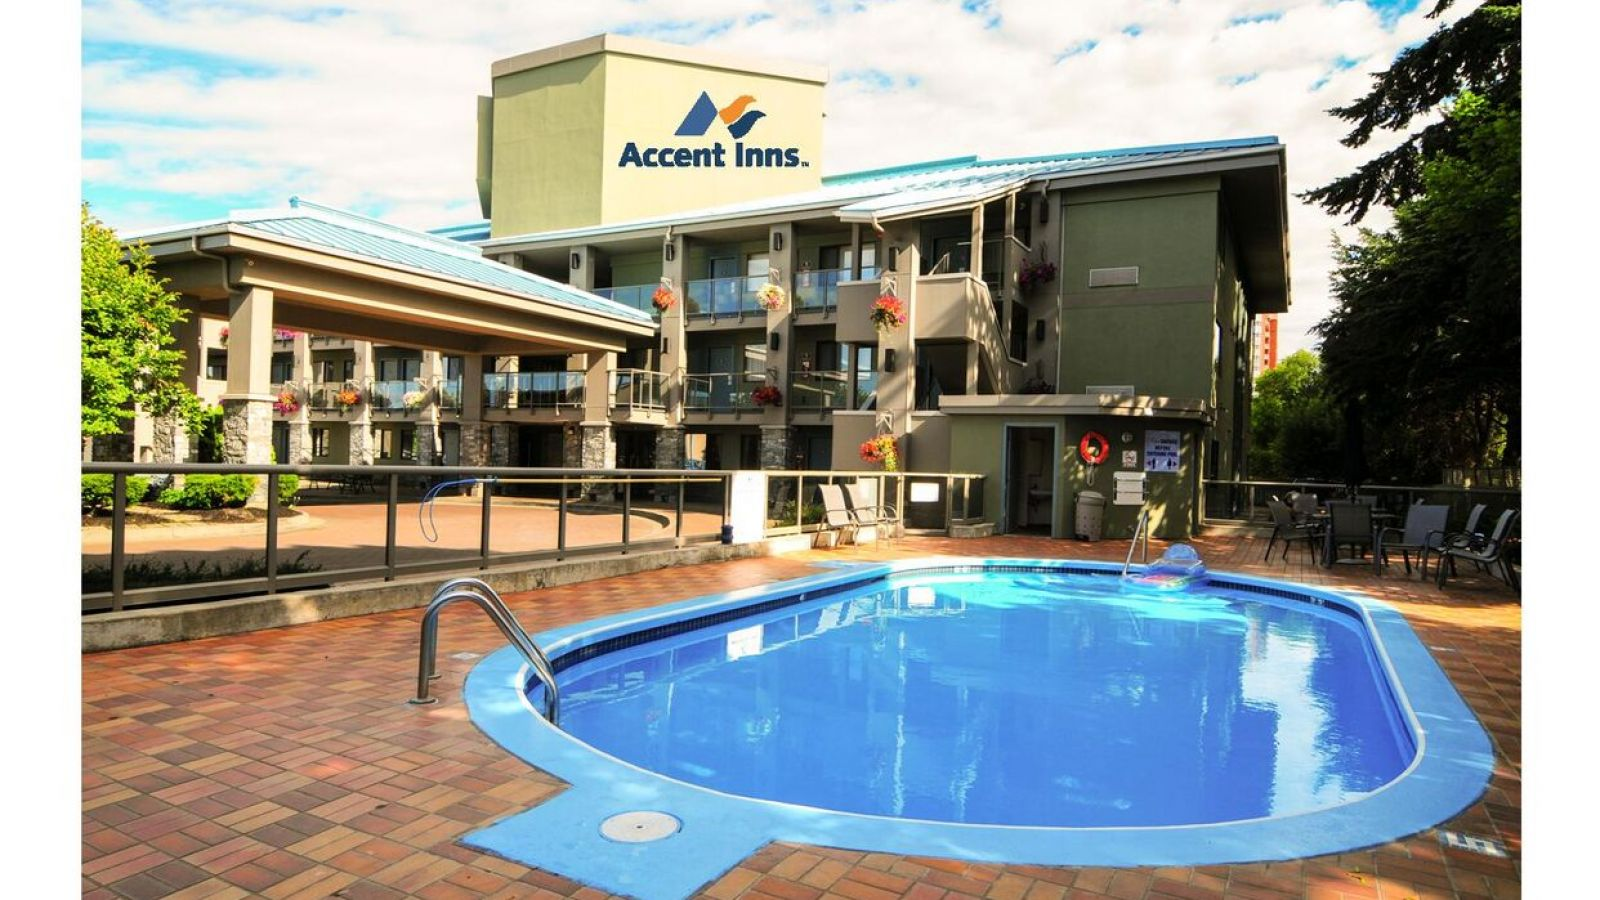 Accent Inn Kelowna - Kelowna golf packages